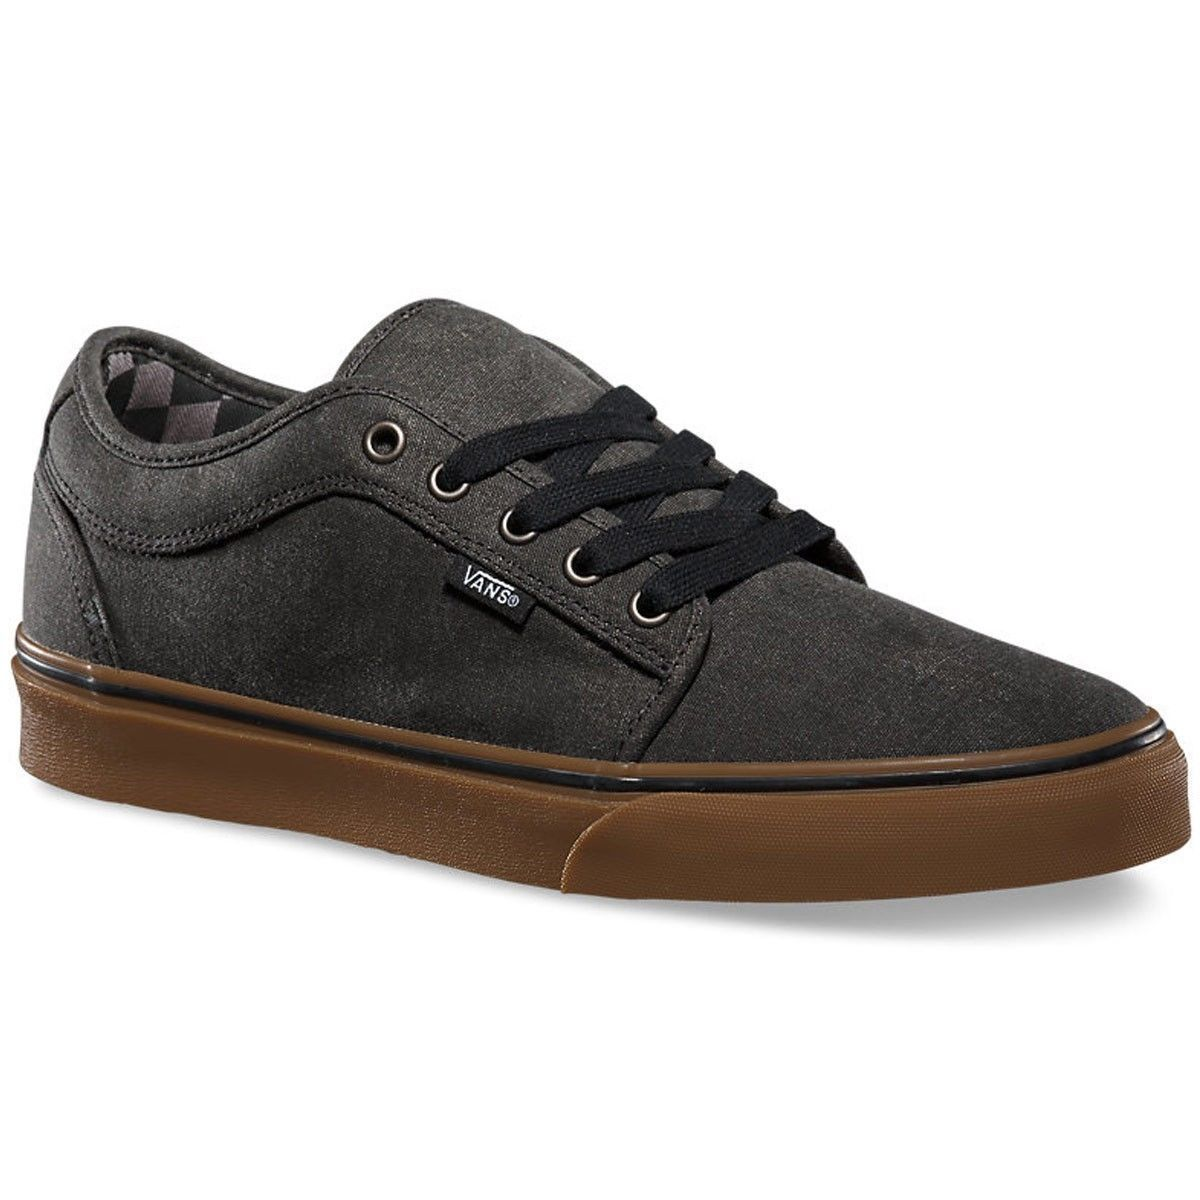 VANS Chukka Low (Washed) Black/Gum Classic Shoes MEN'S 7.5 WOMEN'S 9